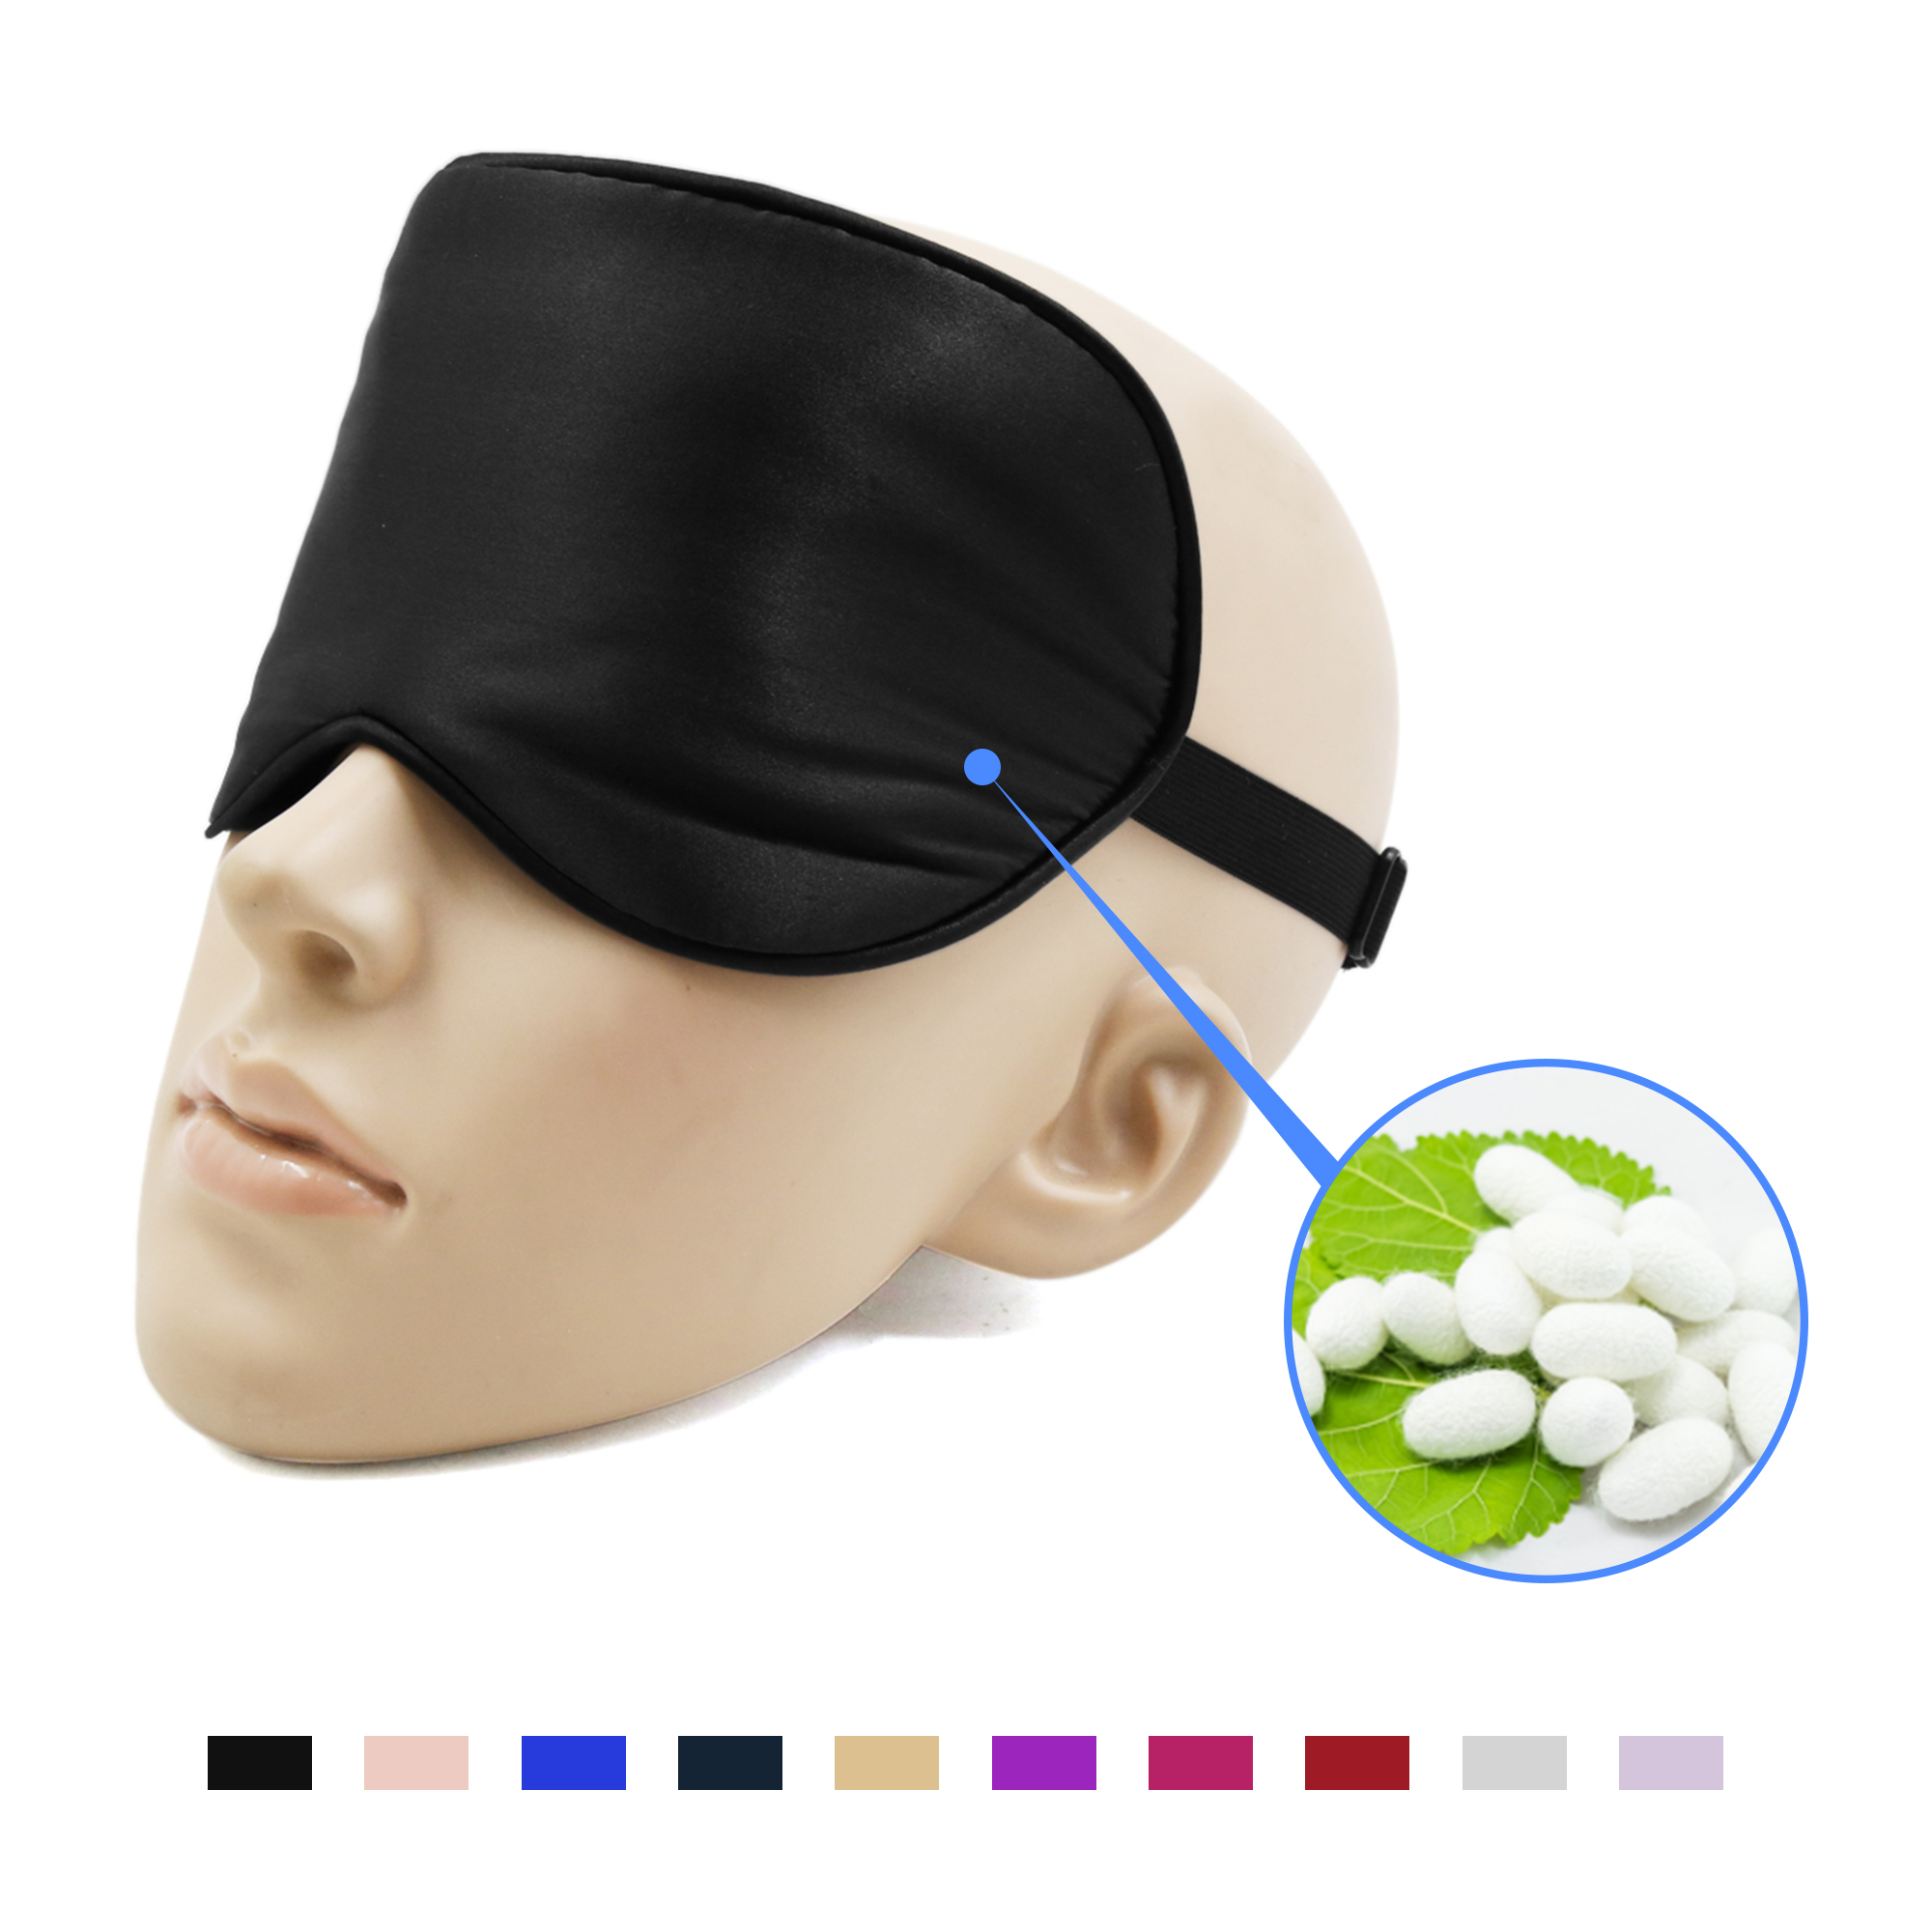 Eye pads for sleeping online dating